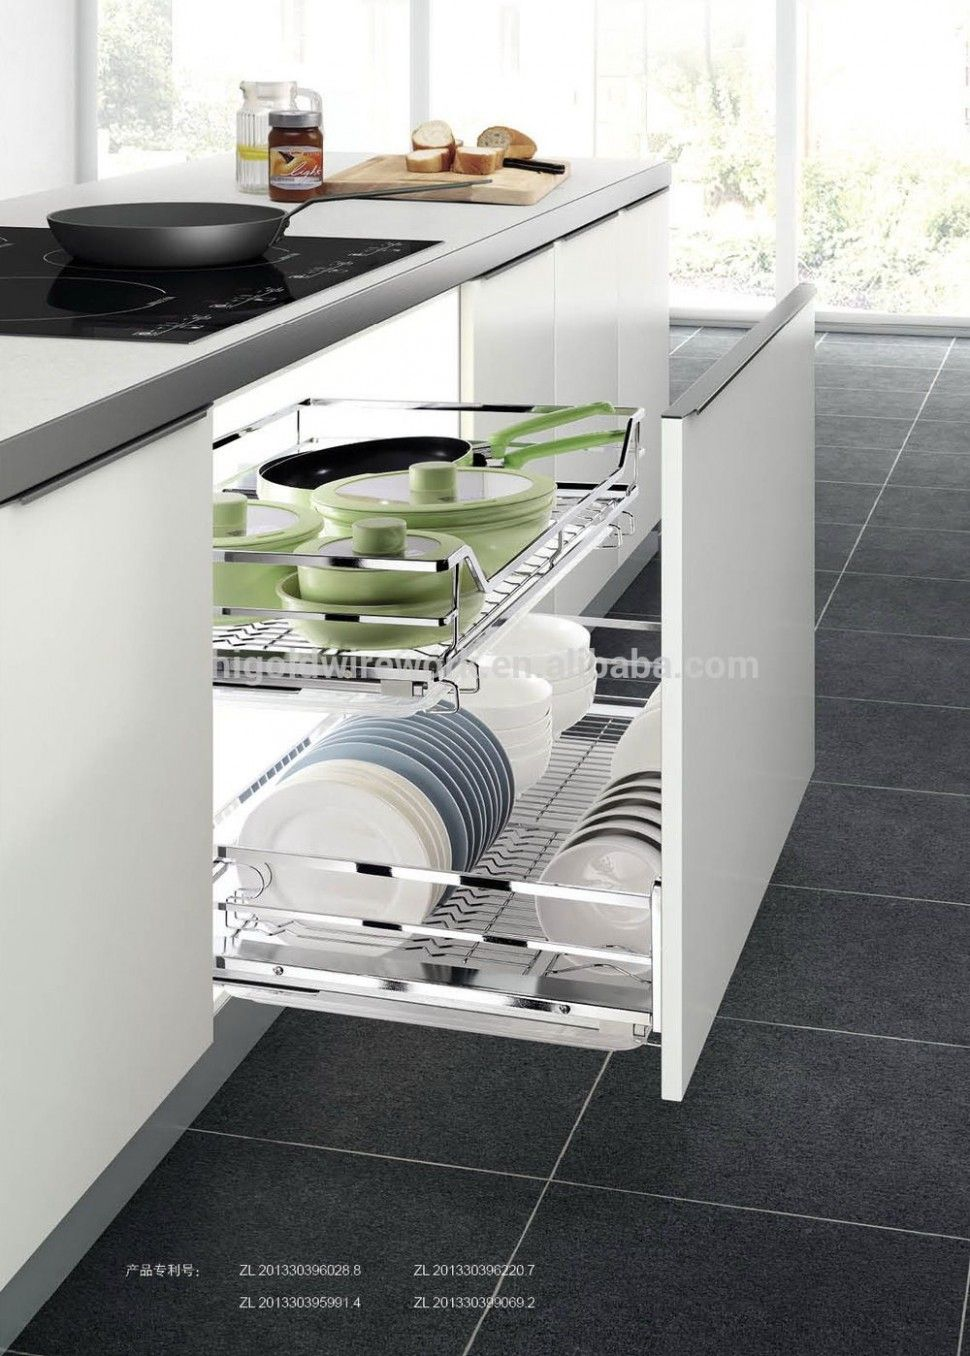 Kitchen Interior Basket Air fryers are accomplished for affable